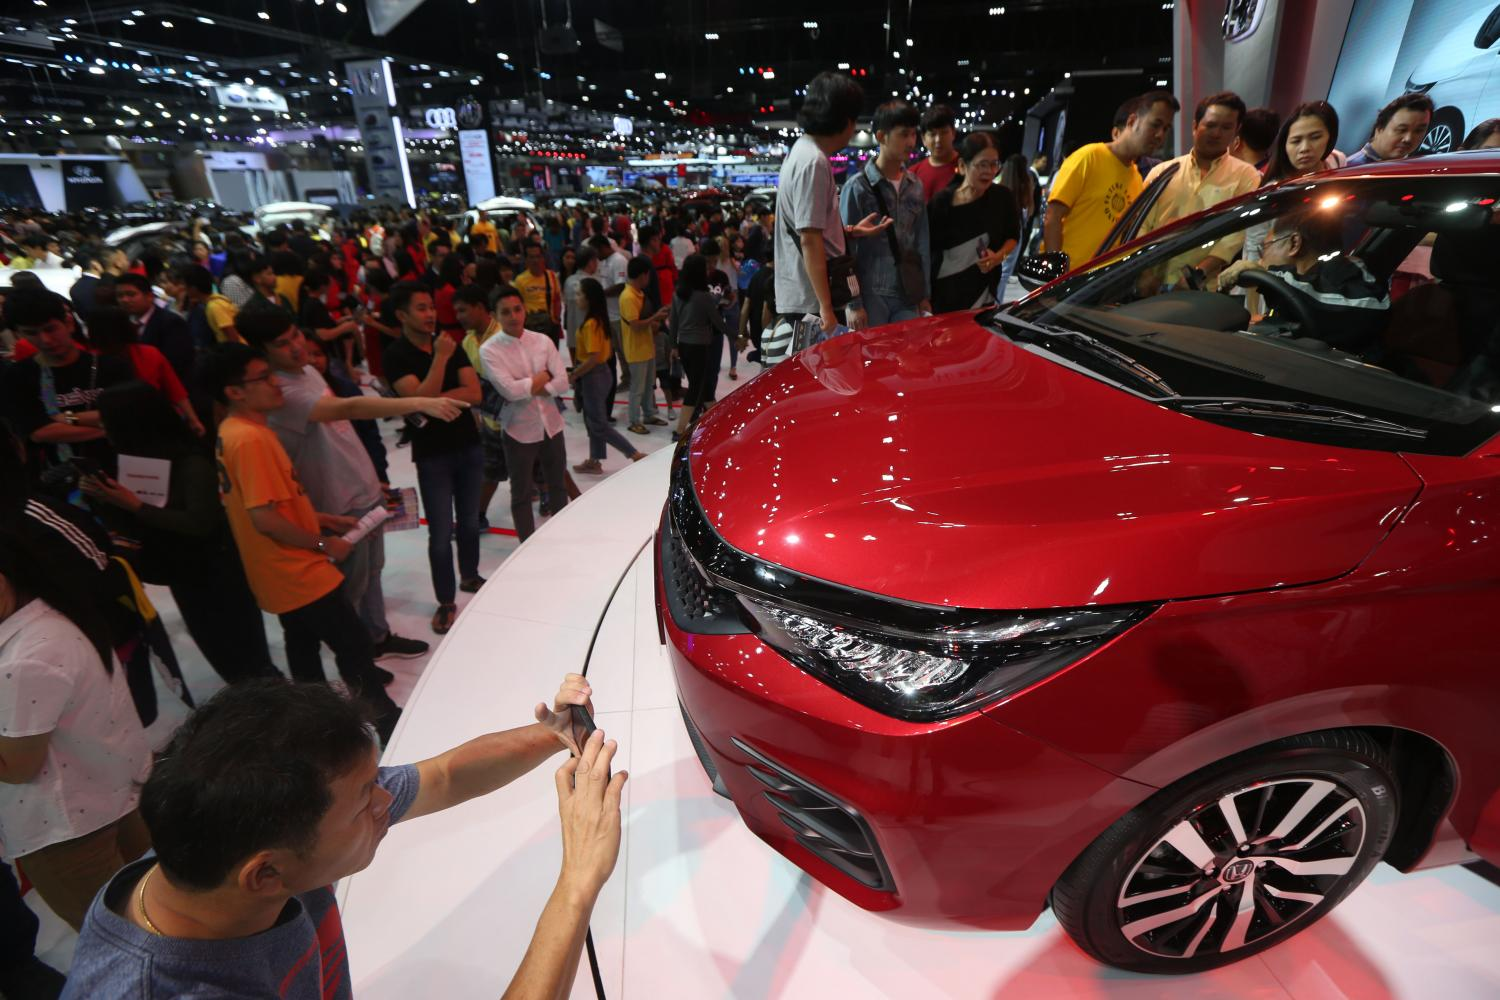 An exhibit at last year's Thailand International Motor Expo. The Excise Department has turned down car makers' proposed 50% tax cut. (Photo by Varuth Hirunyatheb)